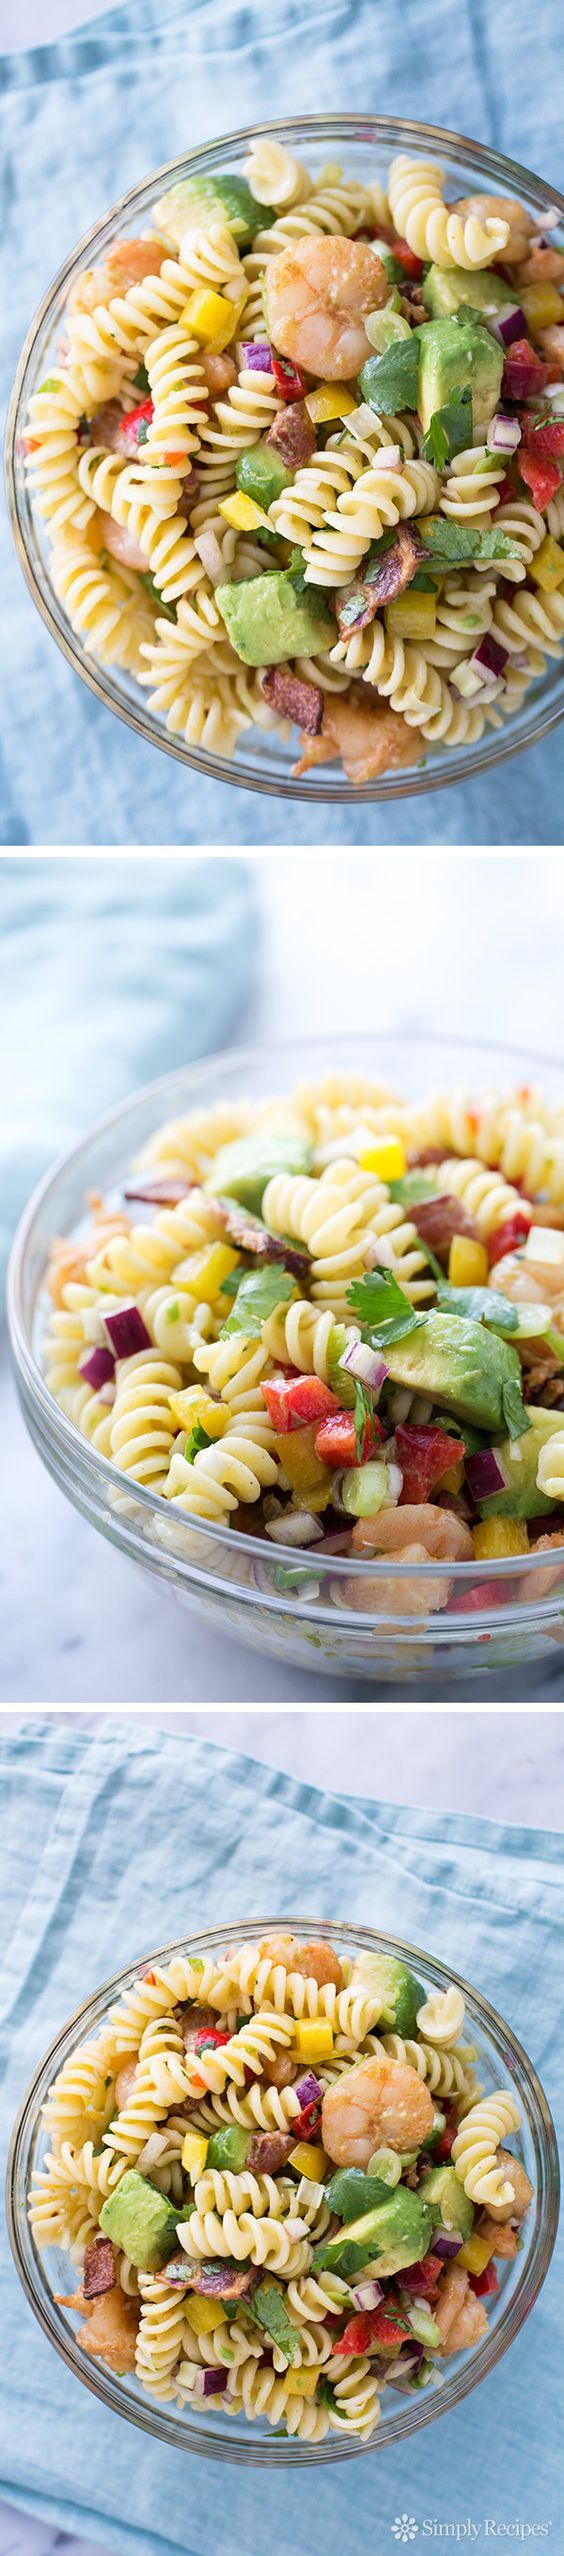 Such a gorgeous summer pasta salad, sure to be a hit at potluck gathering! With fusilli pasta, chipotle-marinated shrimp, bacon, and avocado, all tossed with a zesty fresh lime juice vinaigrette. On SimplyRecipes.com